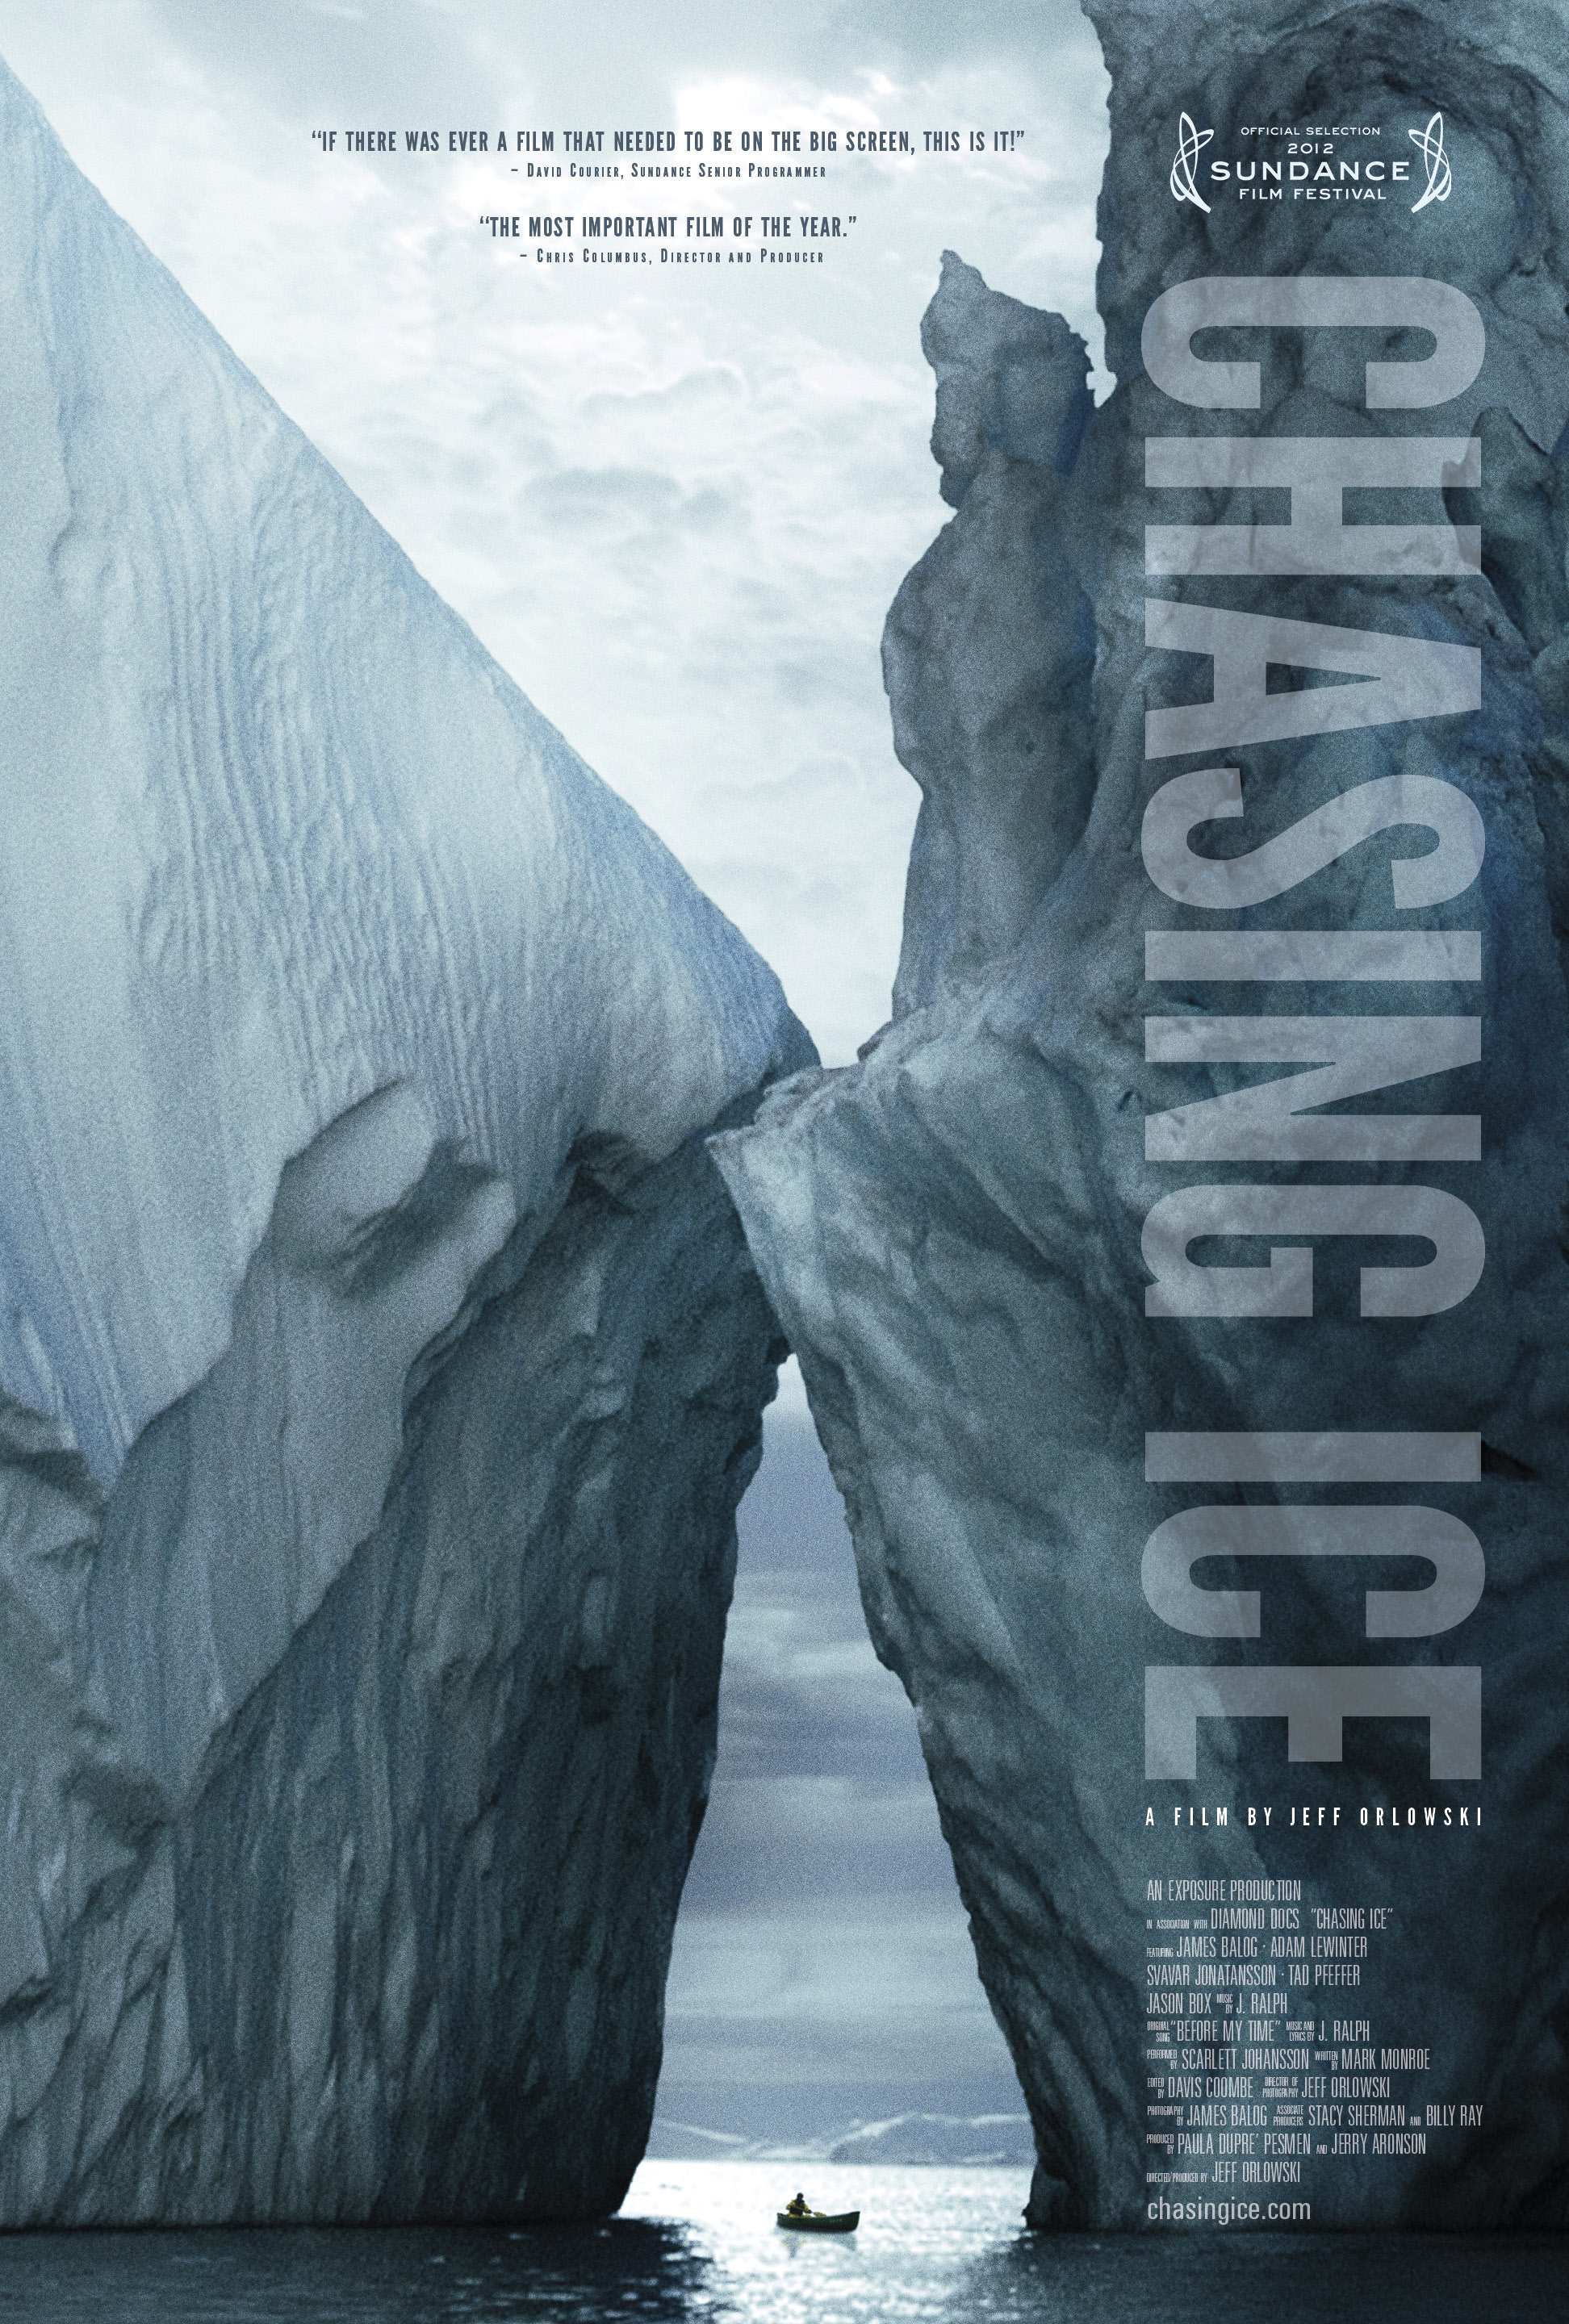 Chasing Ice   is the story of one man's mission to change the tide of history by gathering undeniable evidence of our changing planet. The film captures the work of James Balog as he creates his latest project:The Extreme Ice Survey. Balog deployed revolutionary time-lapse cameras across the brutal Arctic to capture a multi-year record of the world's changing glaciers. These hauntingly beautiful videos compress years into seconds and reveal ancient mountains of ice in motion as they disappear at a breathtaking rate. You can learn more about the film at our  Chasing Ice website .